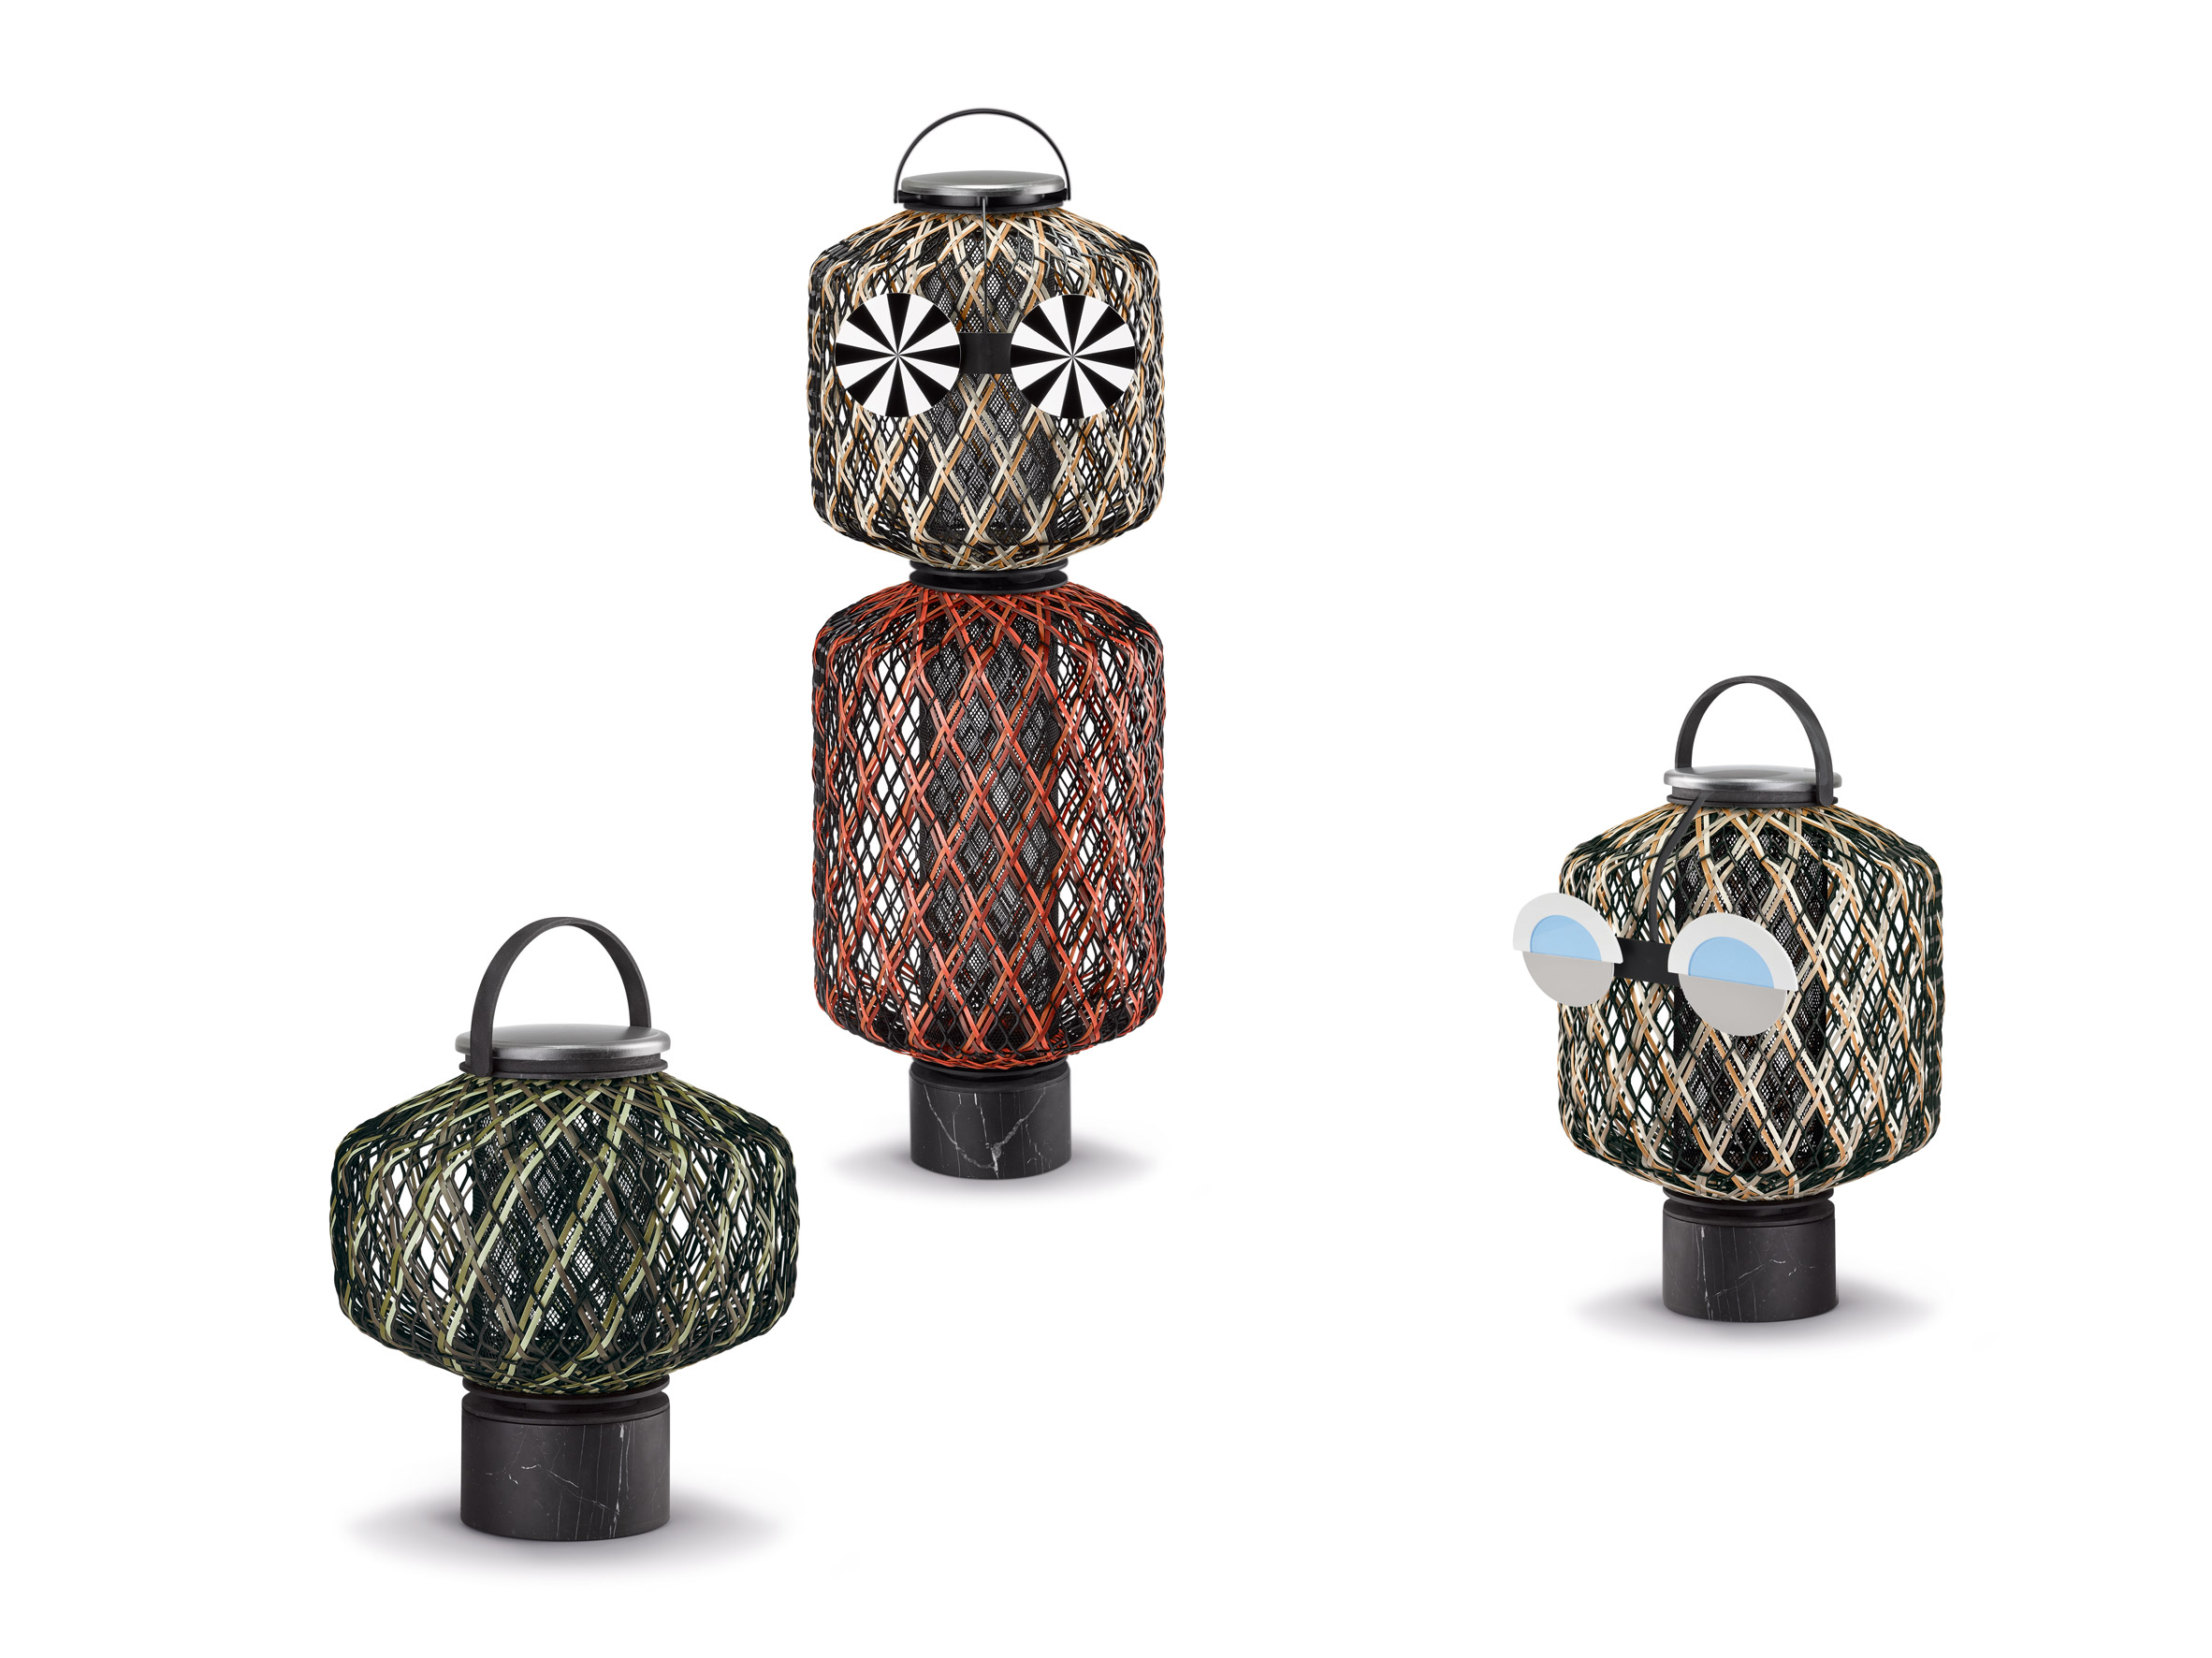 The Others lights by Stephen Burks for Dedon